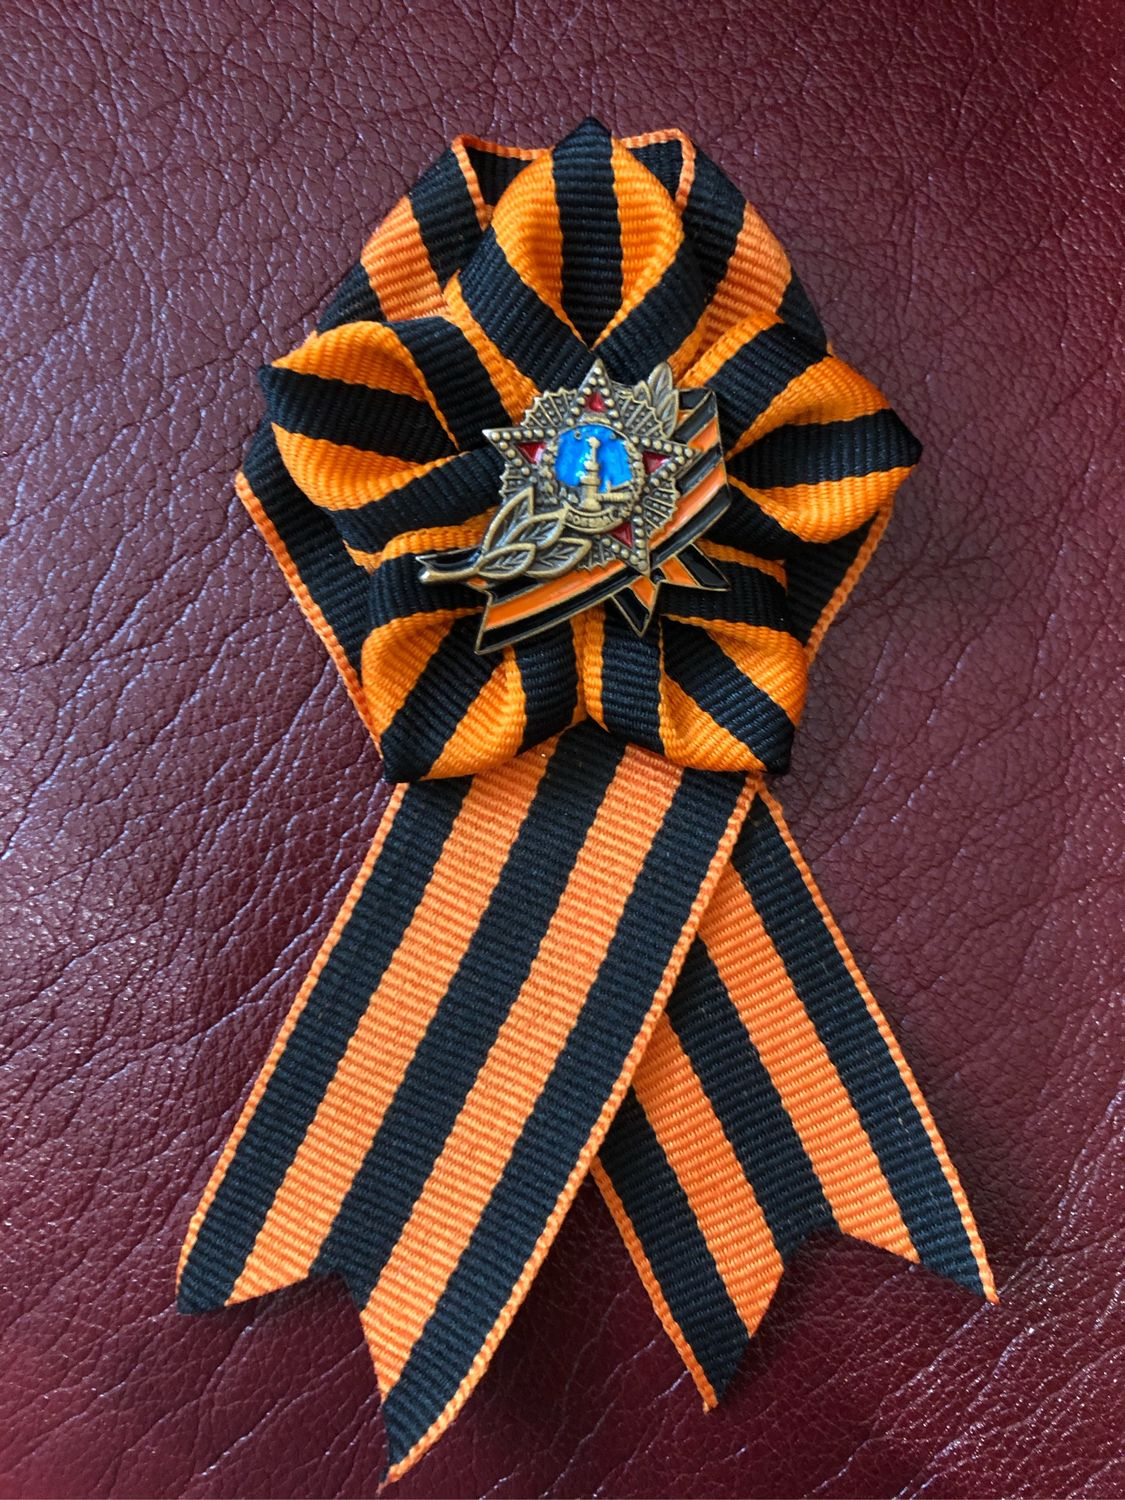 Brooch on may 9 ORDER of the STAR, Brooches, Moscow,  Фото №1